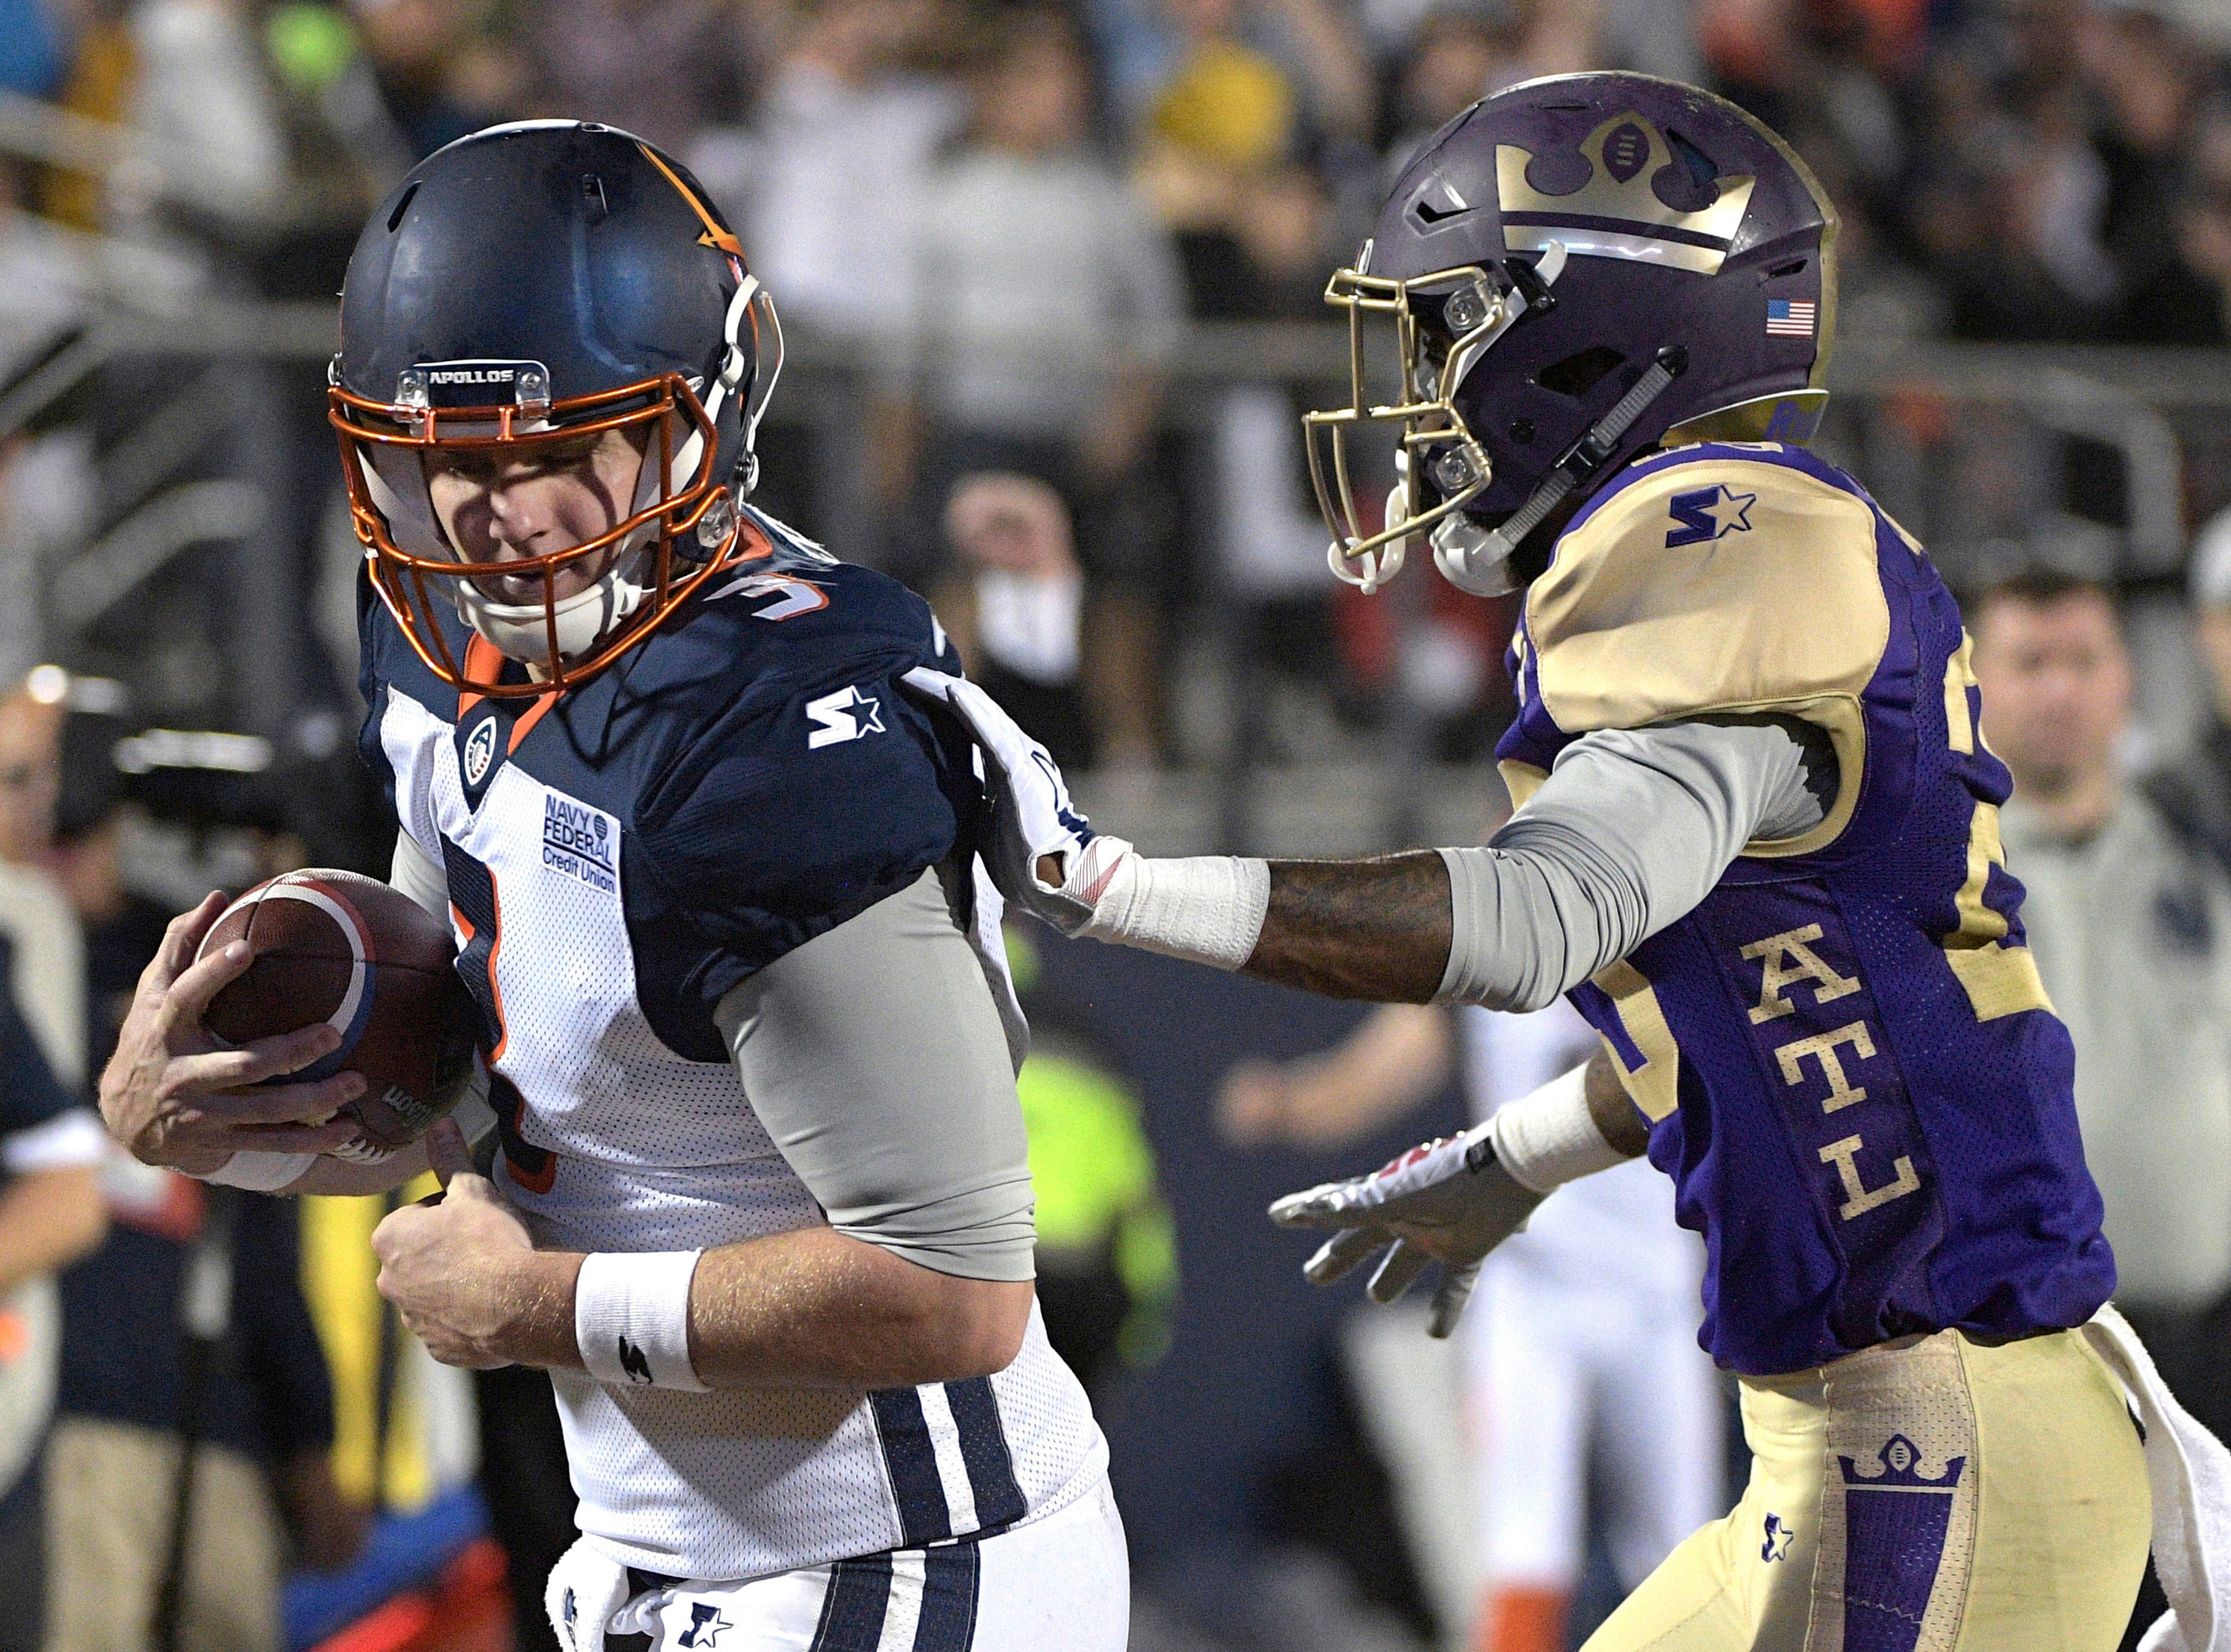 Orlando Apollos quarterback Garrett Gilbert catches a pass from receiver Jalin Marshall for a 5-yard touchdown, in front of Atlanta Legends defensive back Damian Swann during the first half of an Alliance of American Football game Saturday, Feb. 9, 2019, in Orlando, Fla. (AP Photo/Phelan M. Ebenhack)